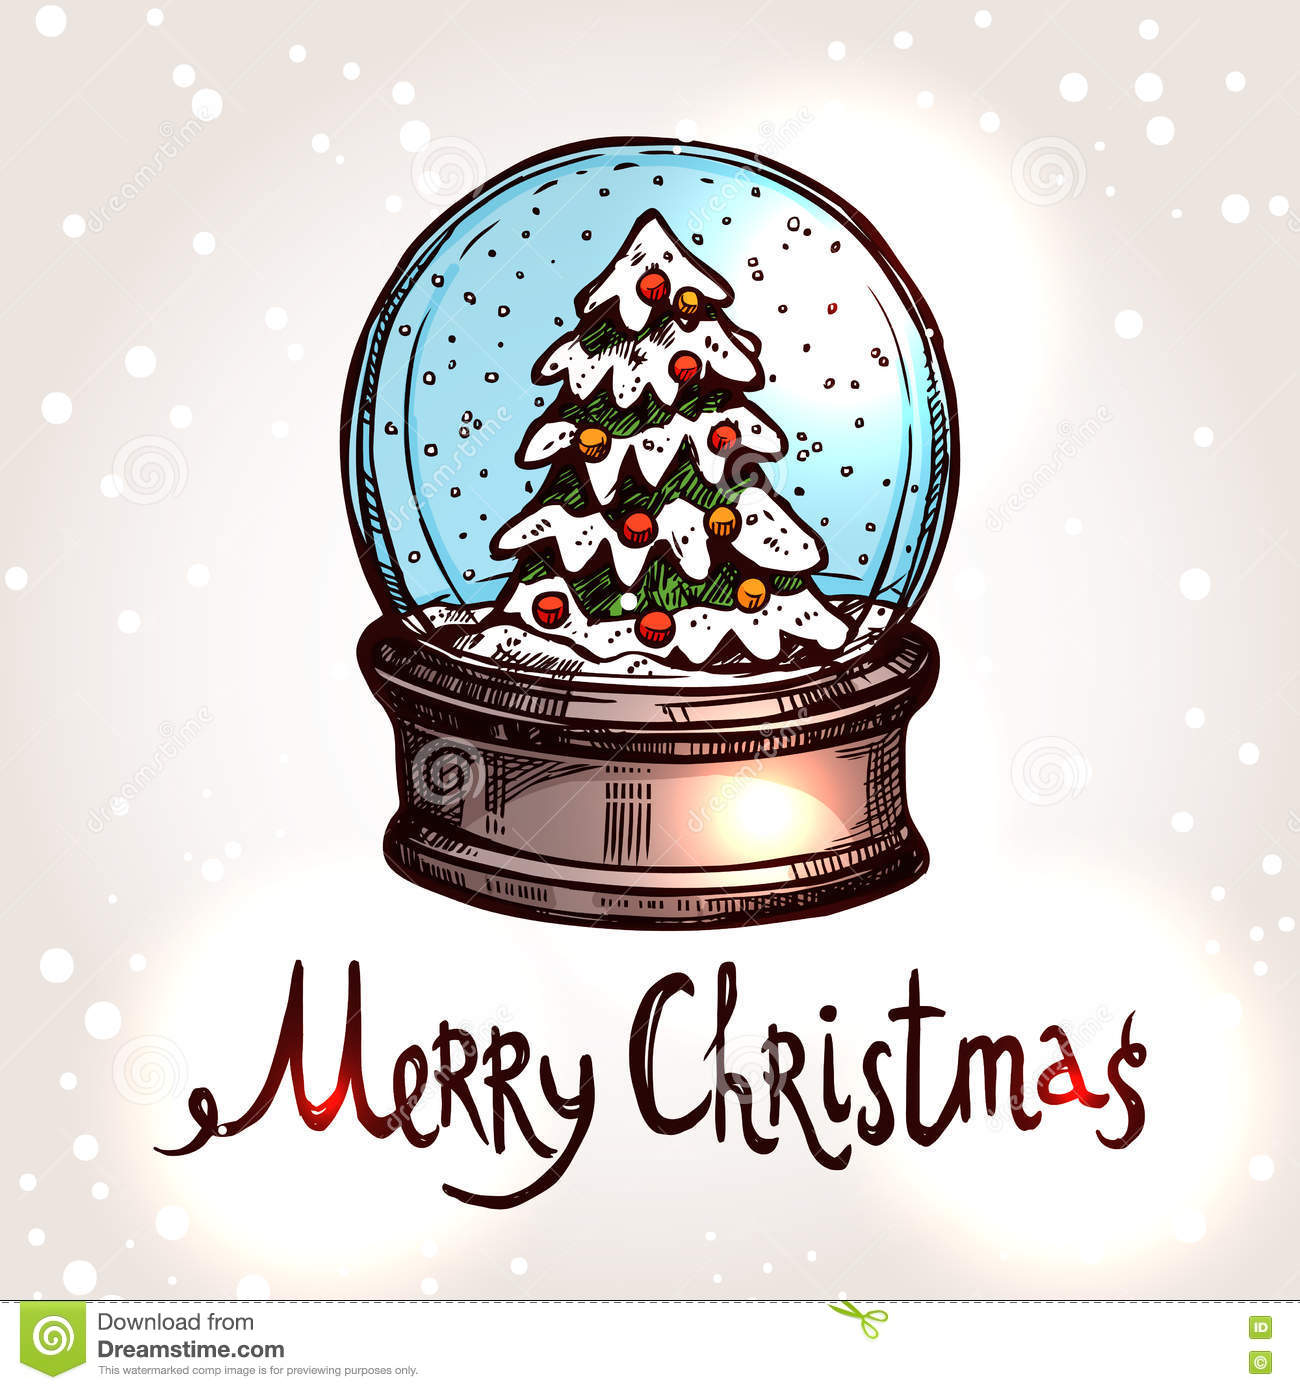 Christmas Card With Hand Drawn Snowglobe Stock Vector Illustration